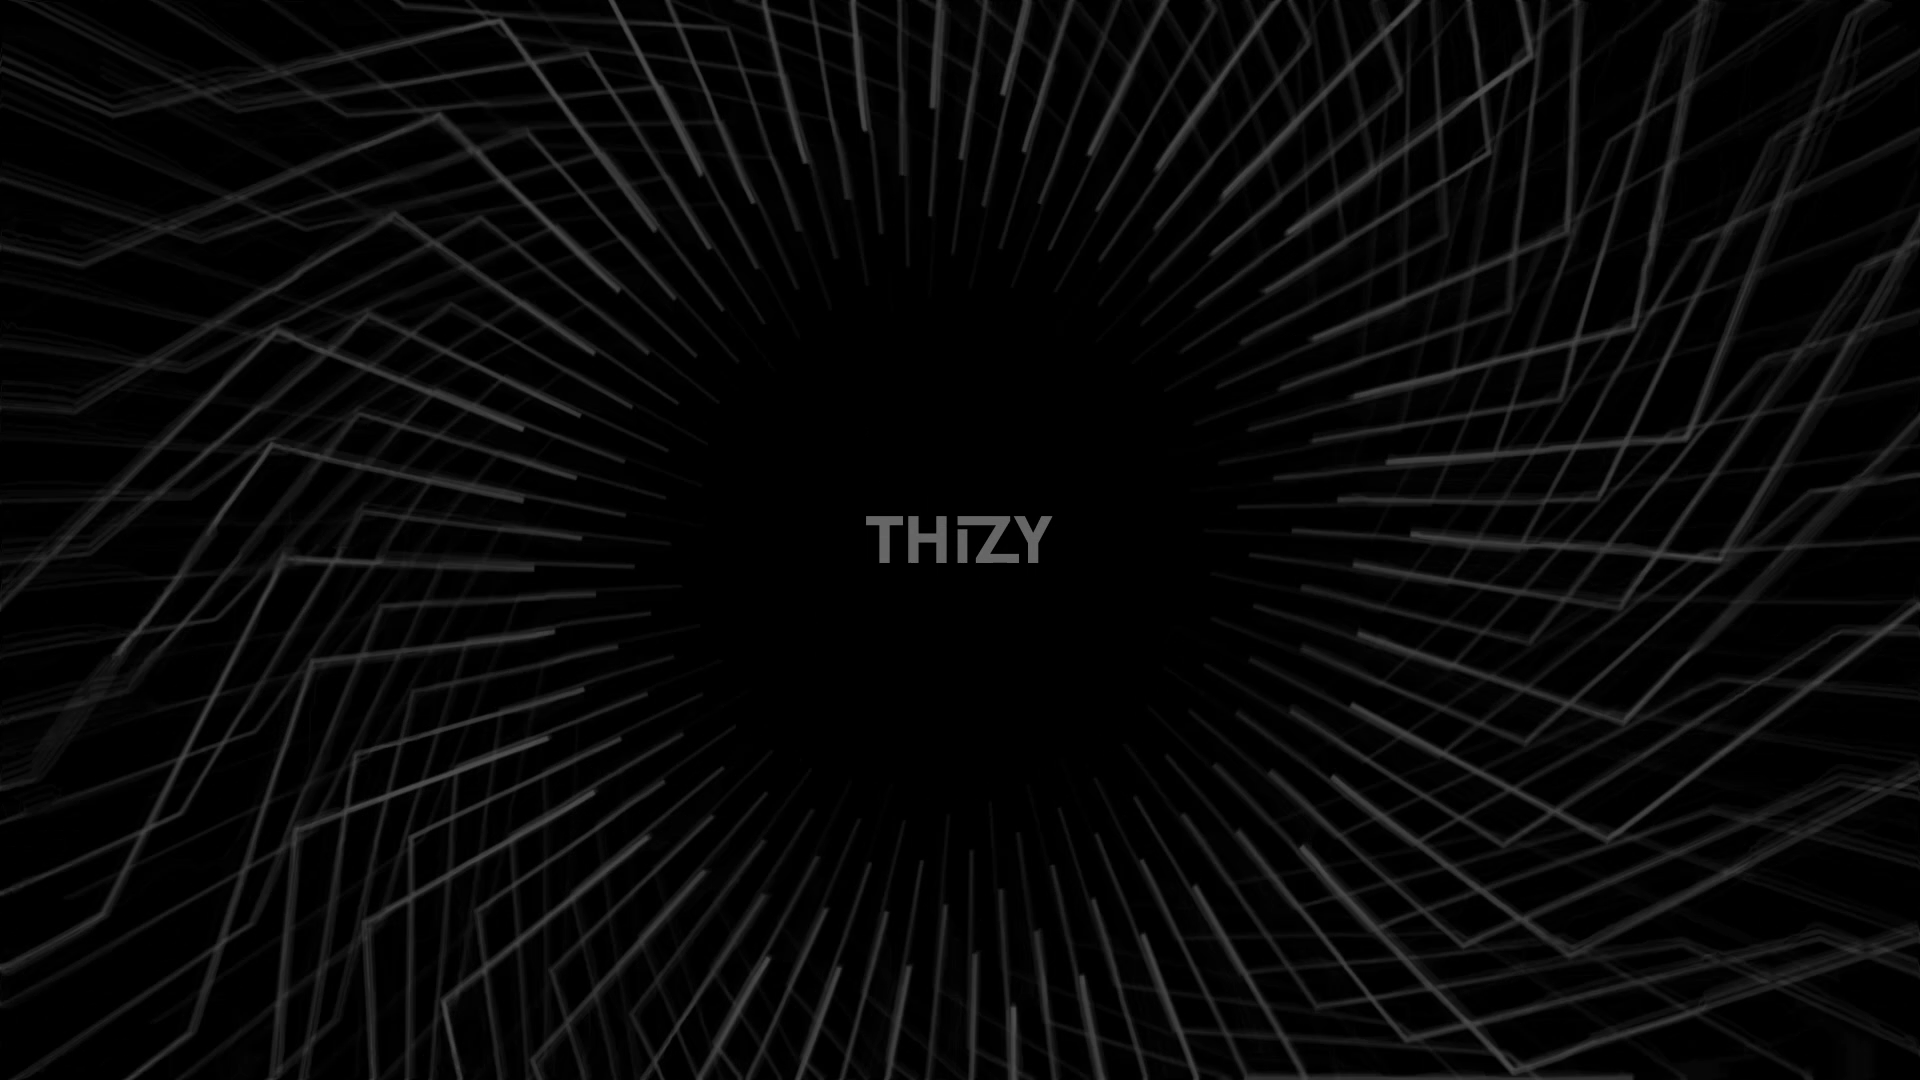 Thizy